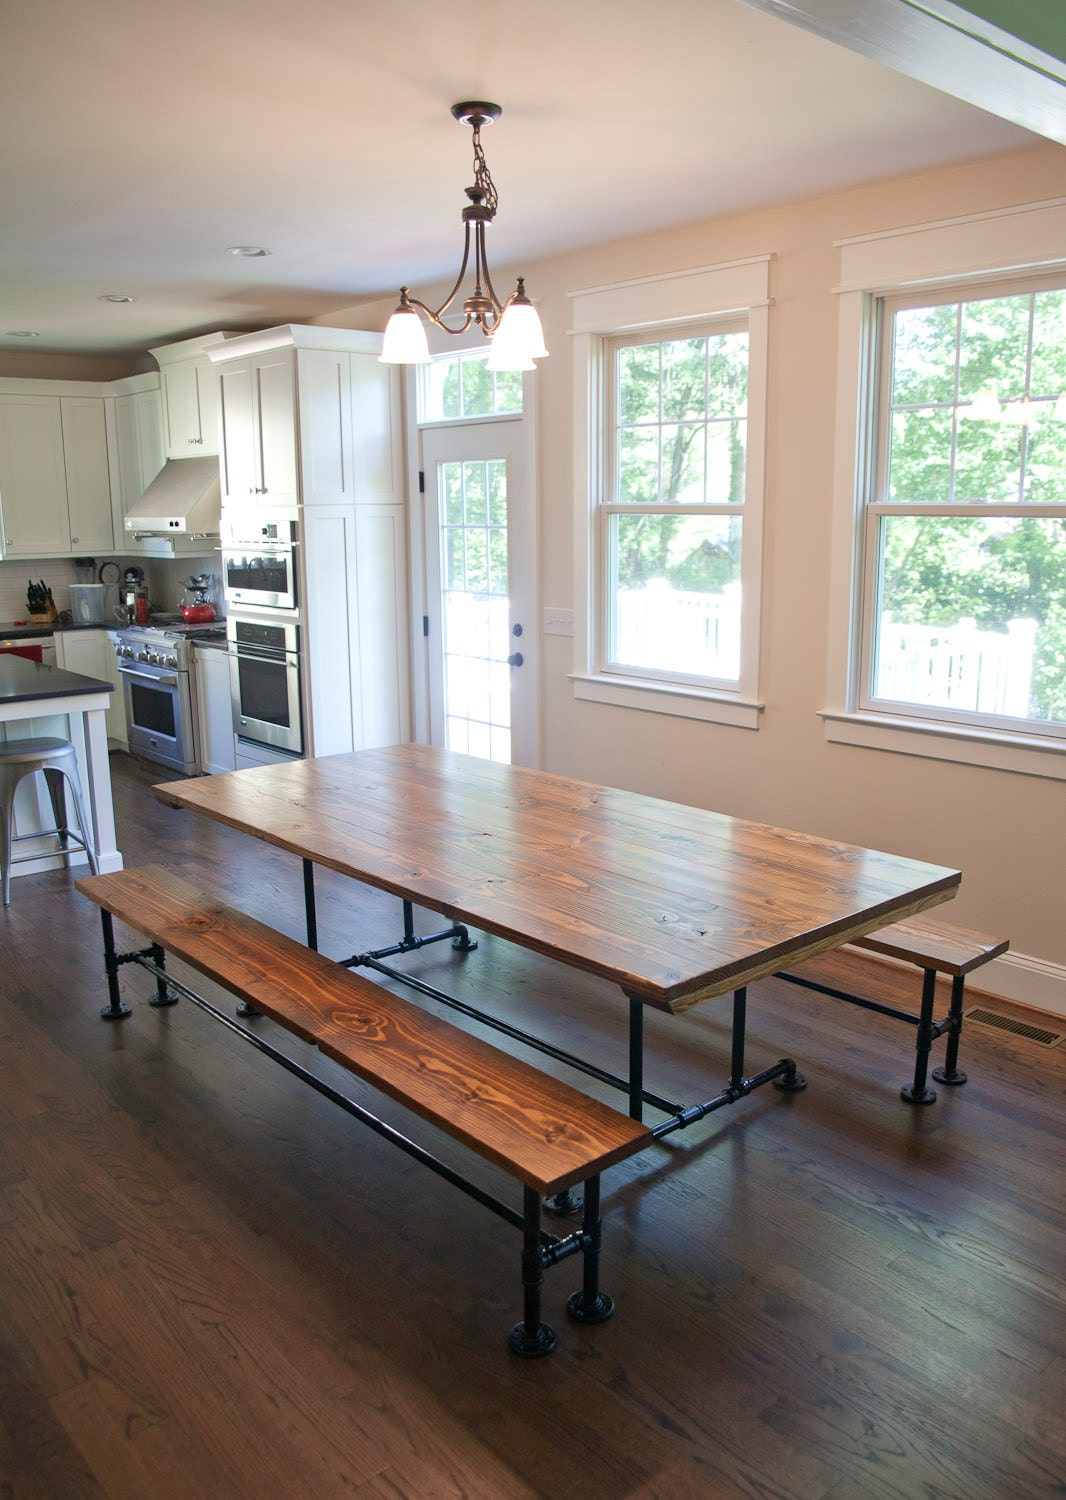 6ft industrial style farmhouse table farmhouse dining table. Black Bedroom Furniture Sets. Home Design Ideas